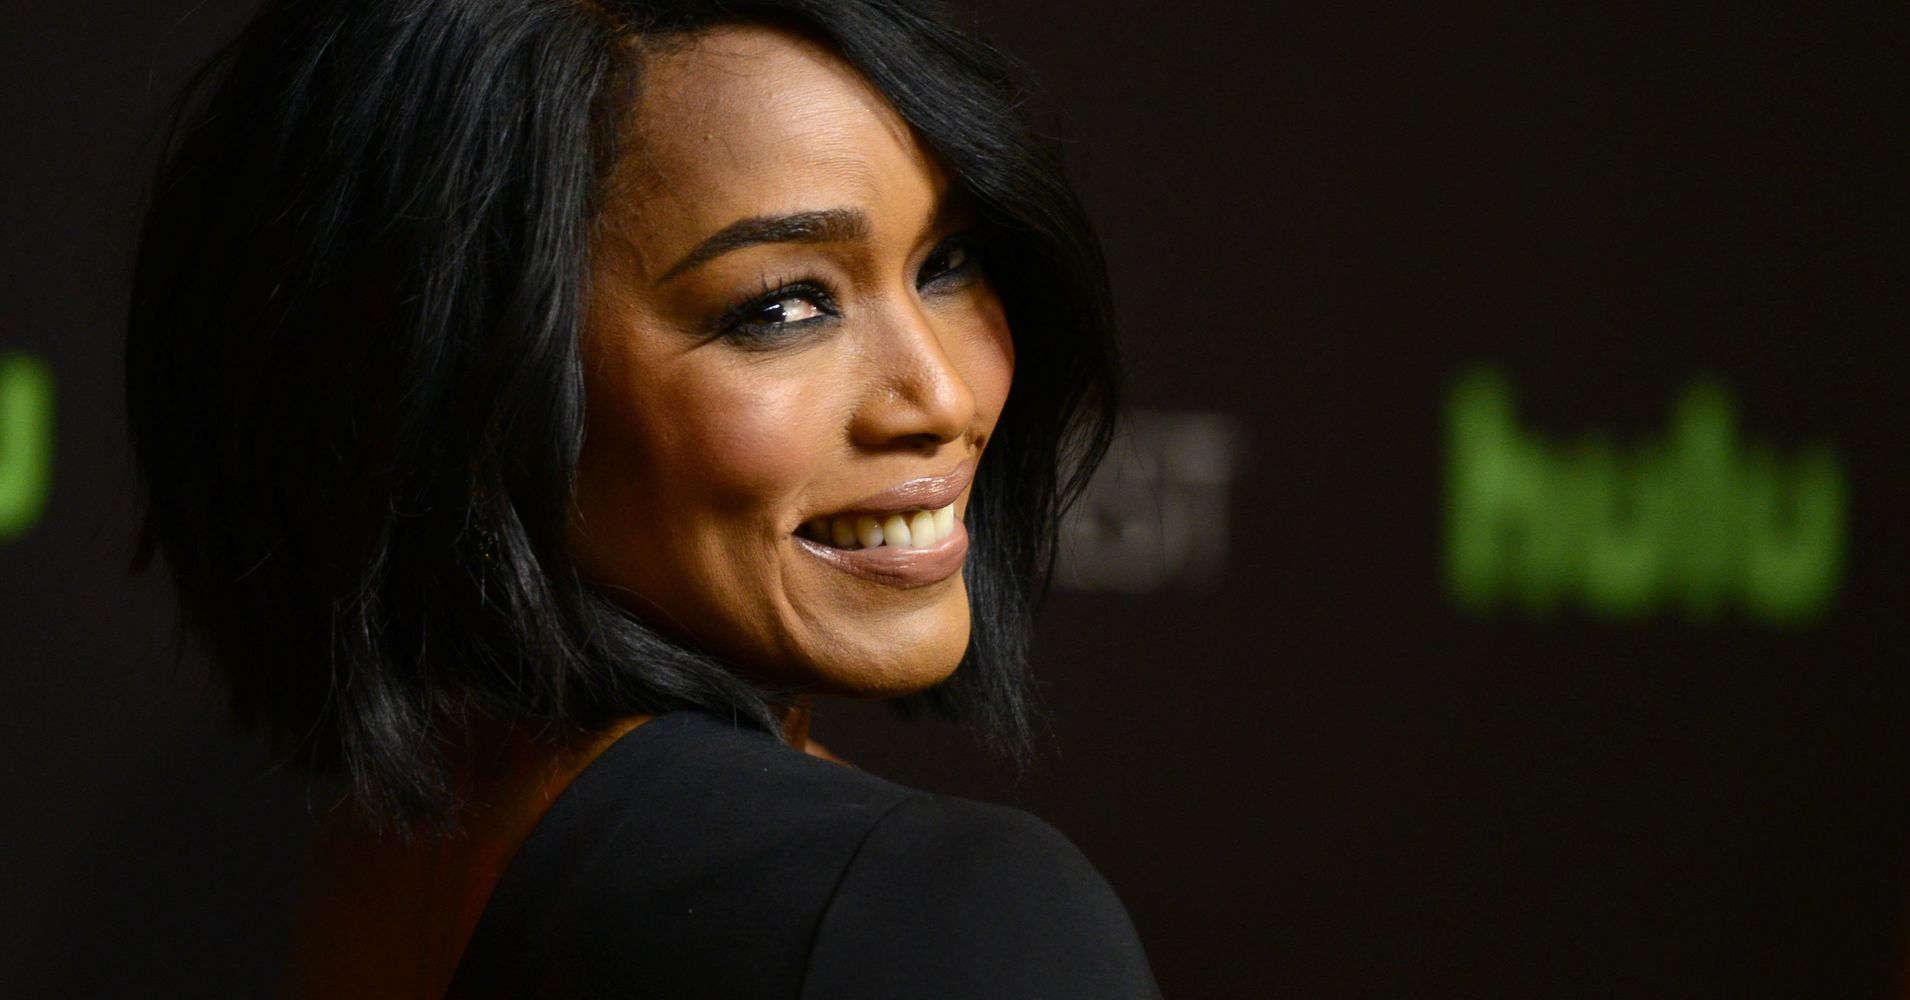 Angela Bassett Is Honoring Her Late Mom With This Health Campaign